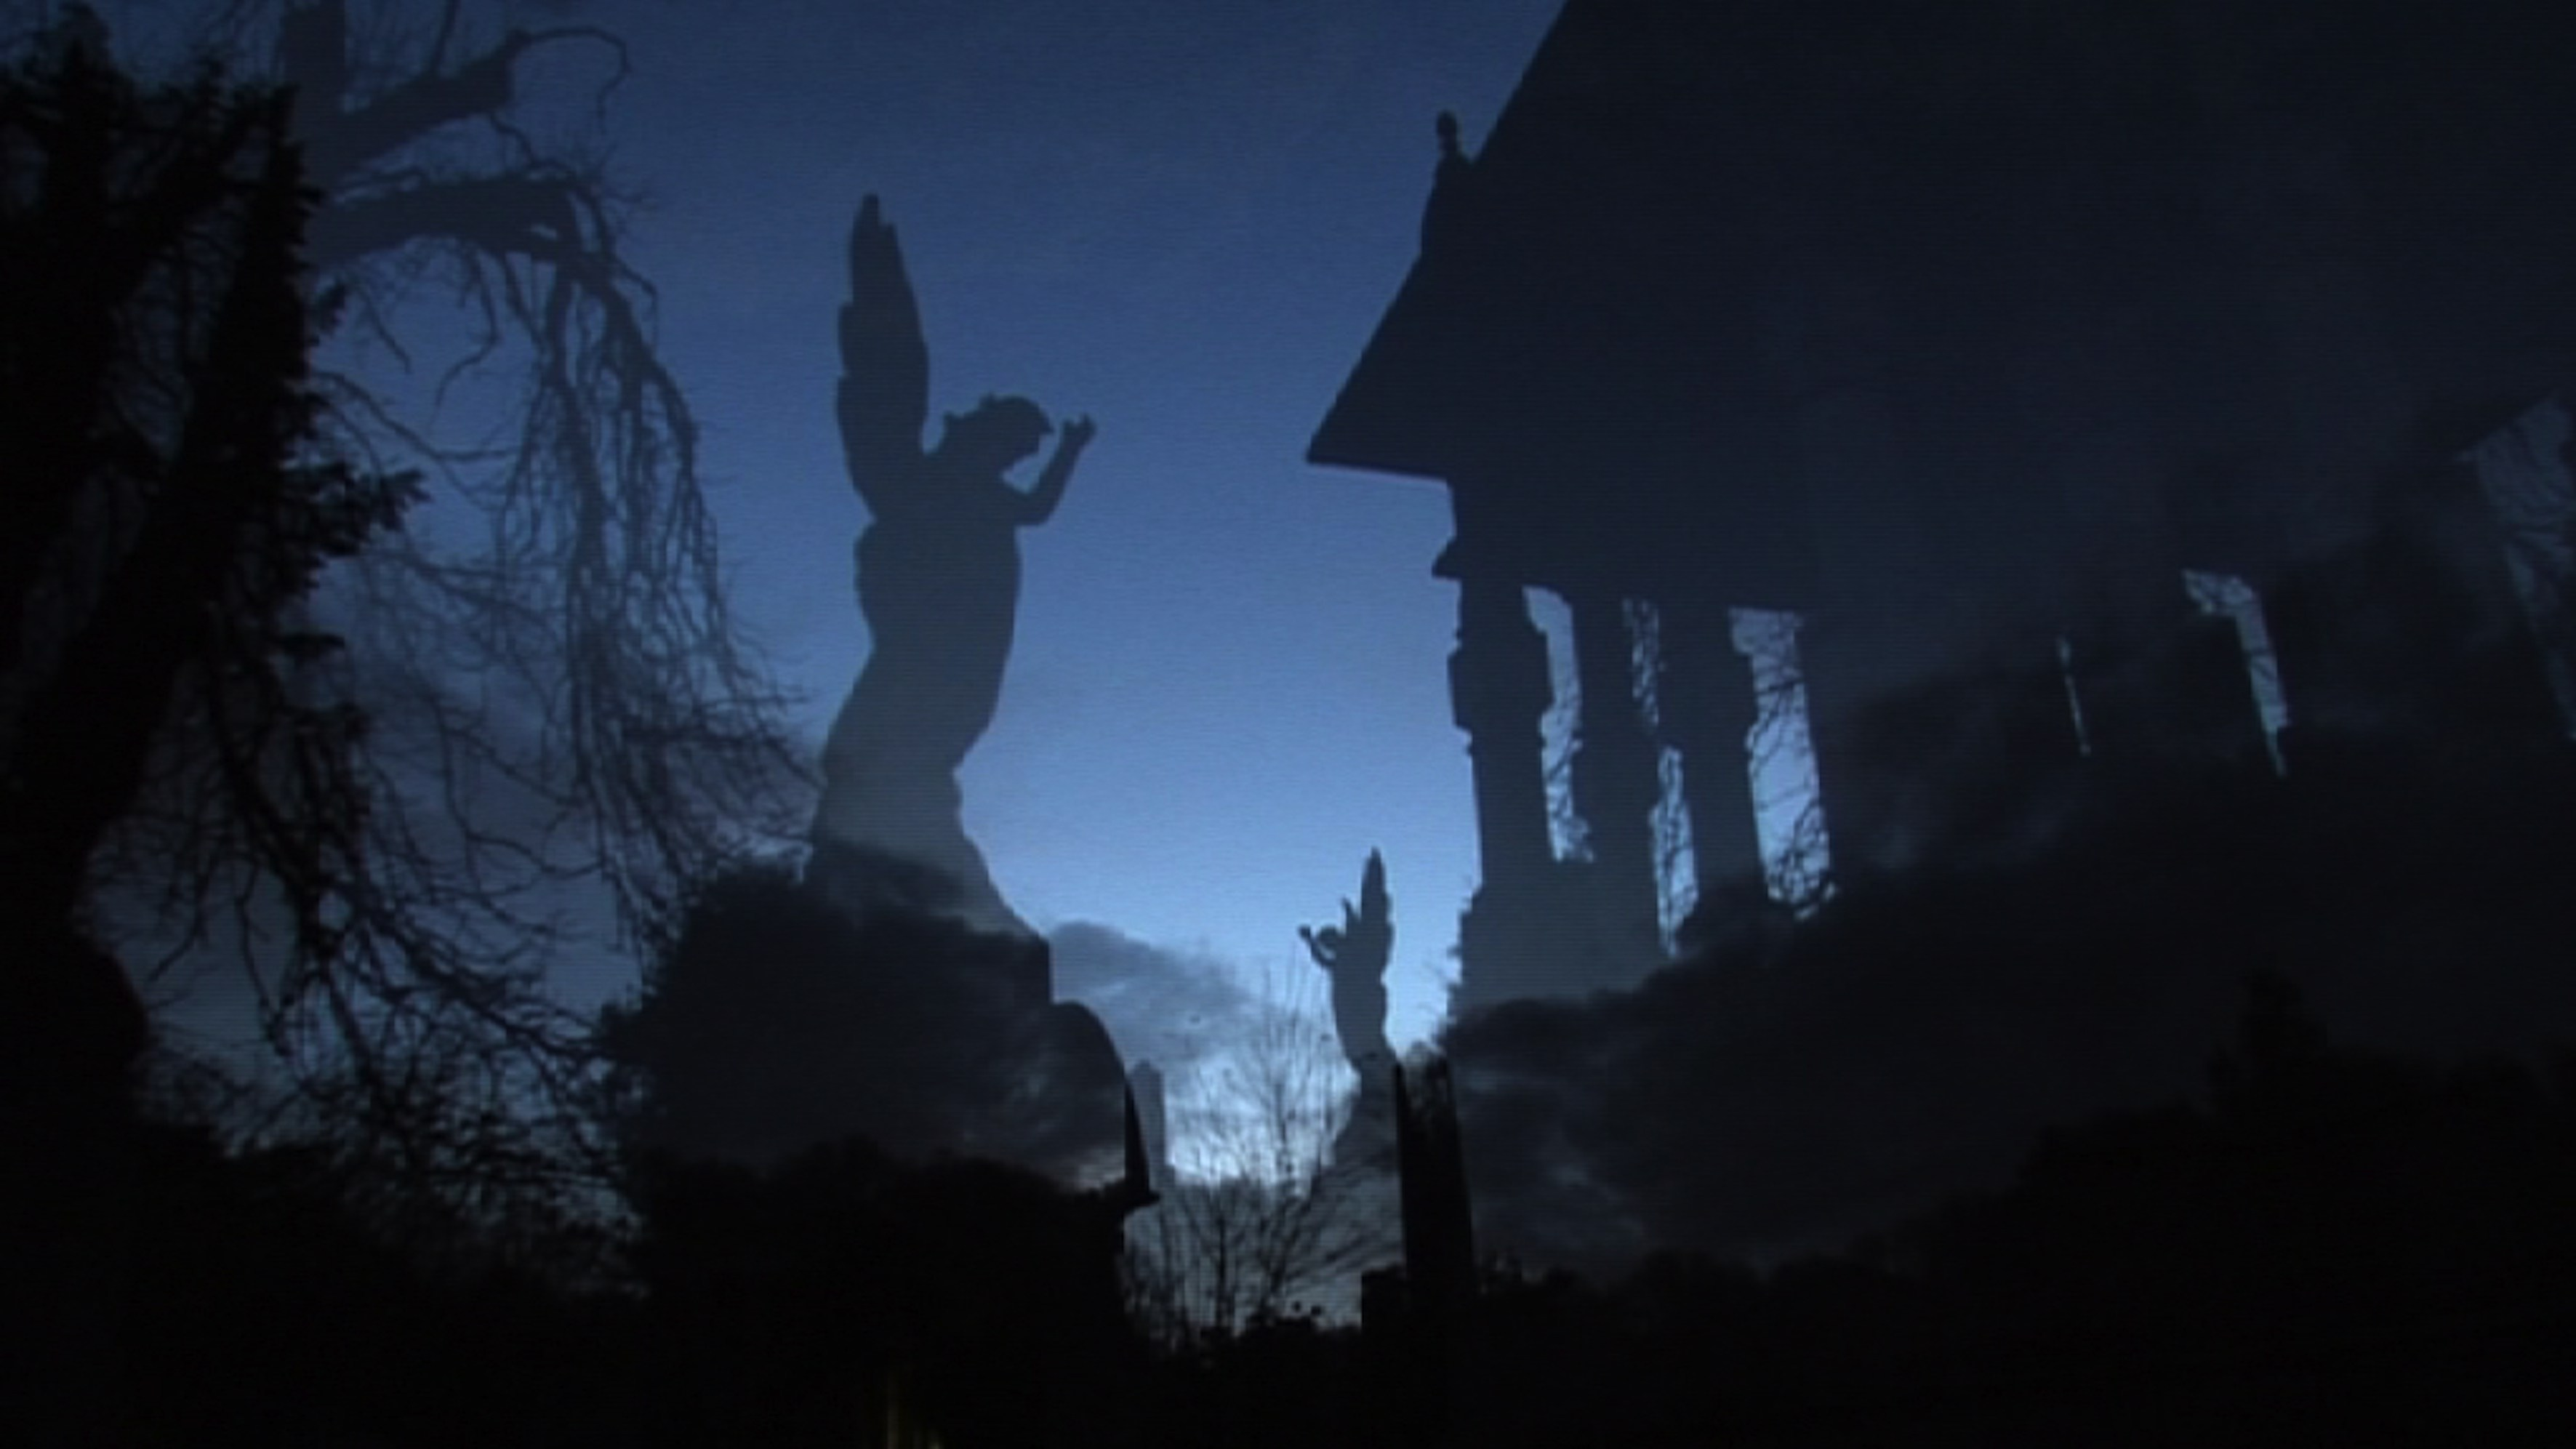 Arnos Vale Cemetery Stone Angels at Night – Future Cemetery